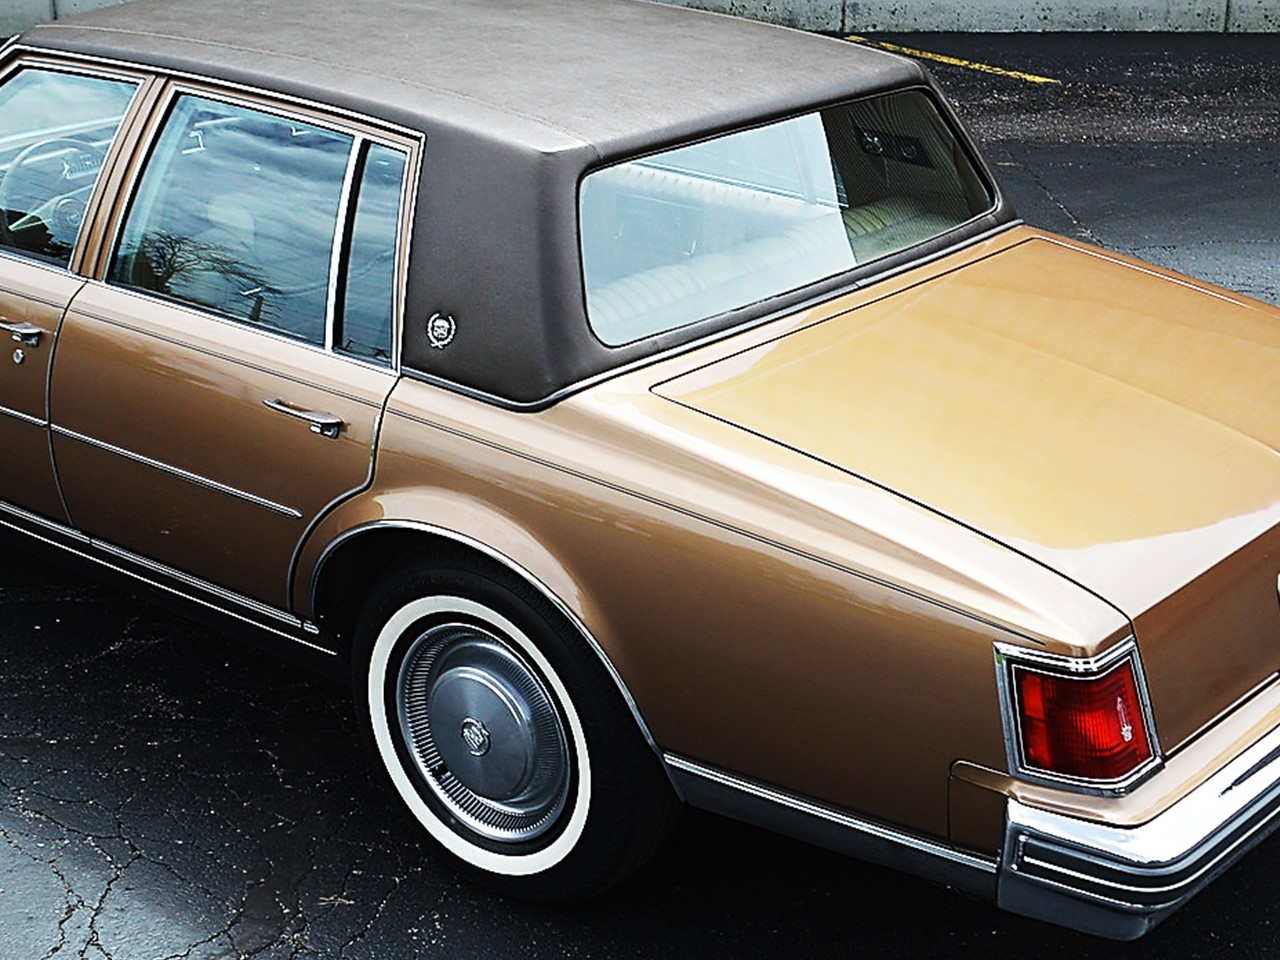 1976 Cadillac Seville The Penalty Of Leadership Notoriousluxury